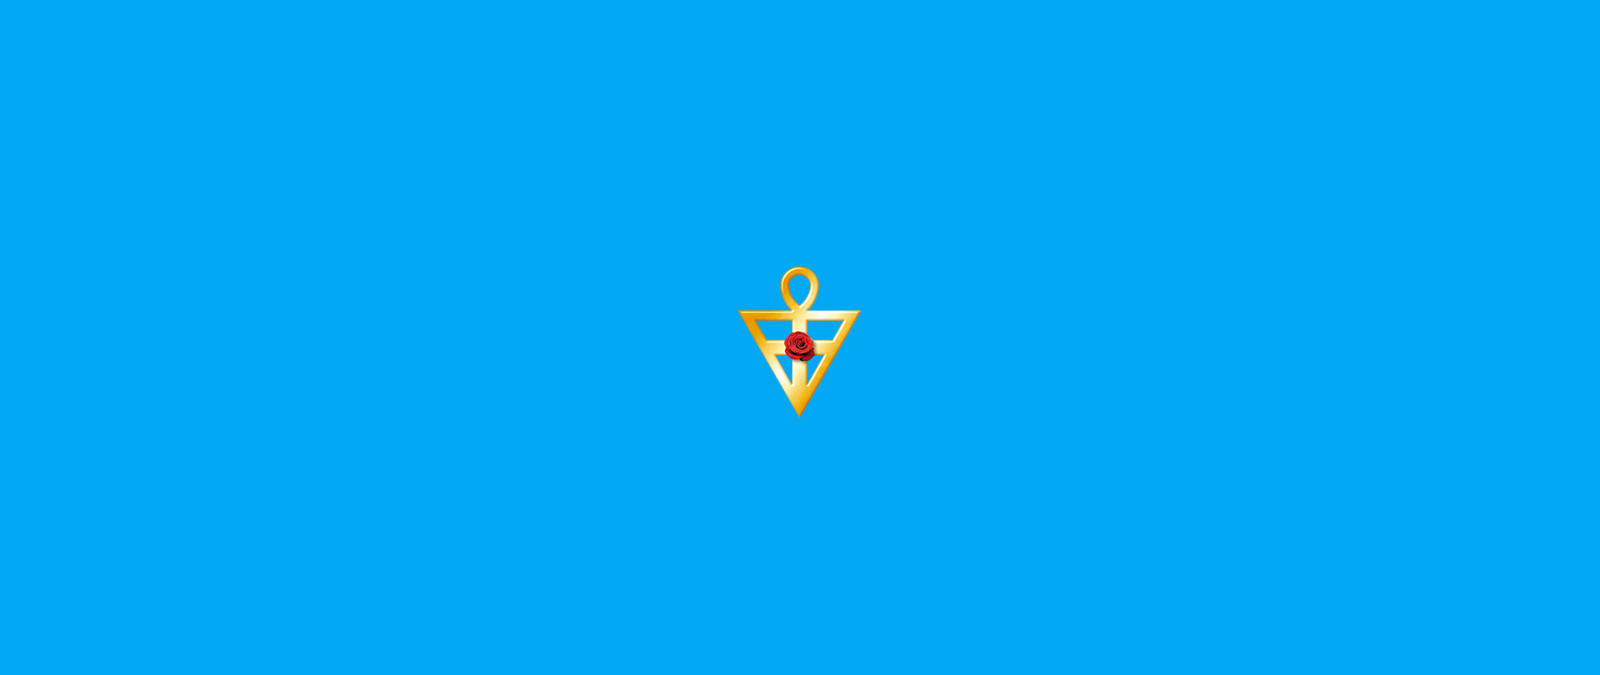 Minimal amorc wallpaper 2560x1080 by dssdiego on deviantart for Minimal art 2016